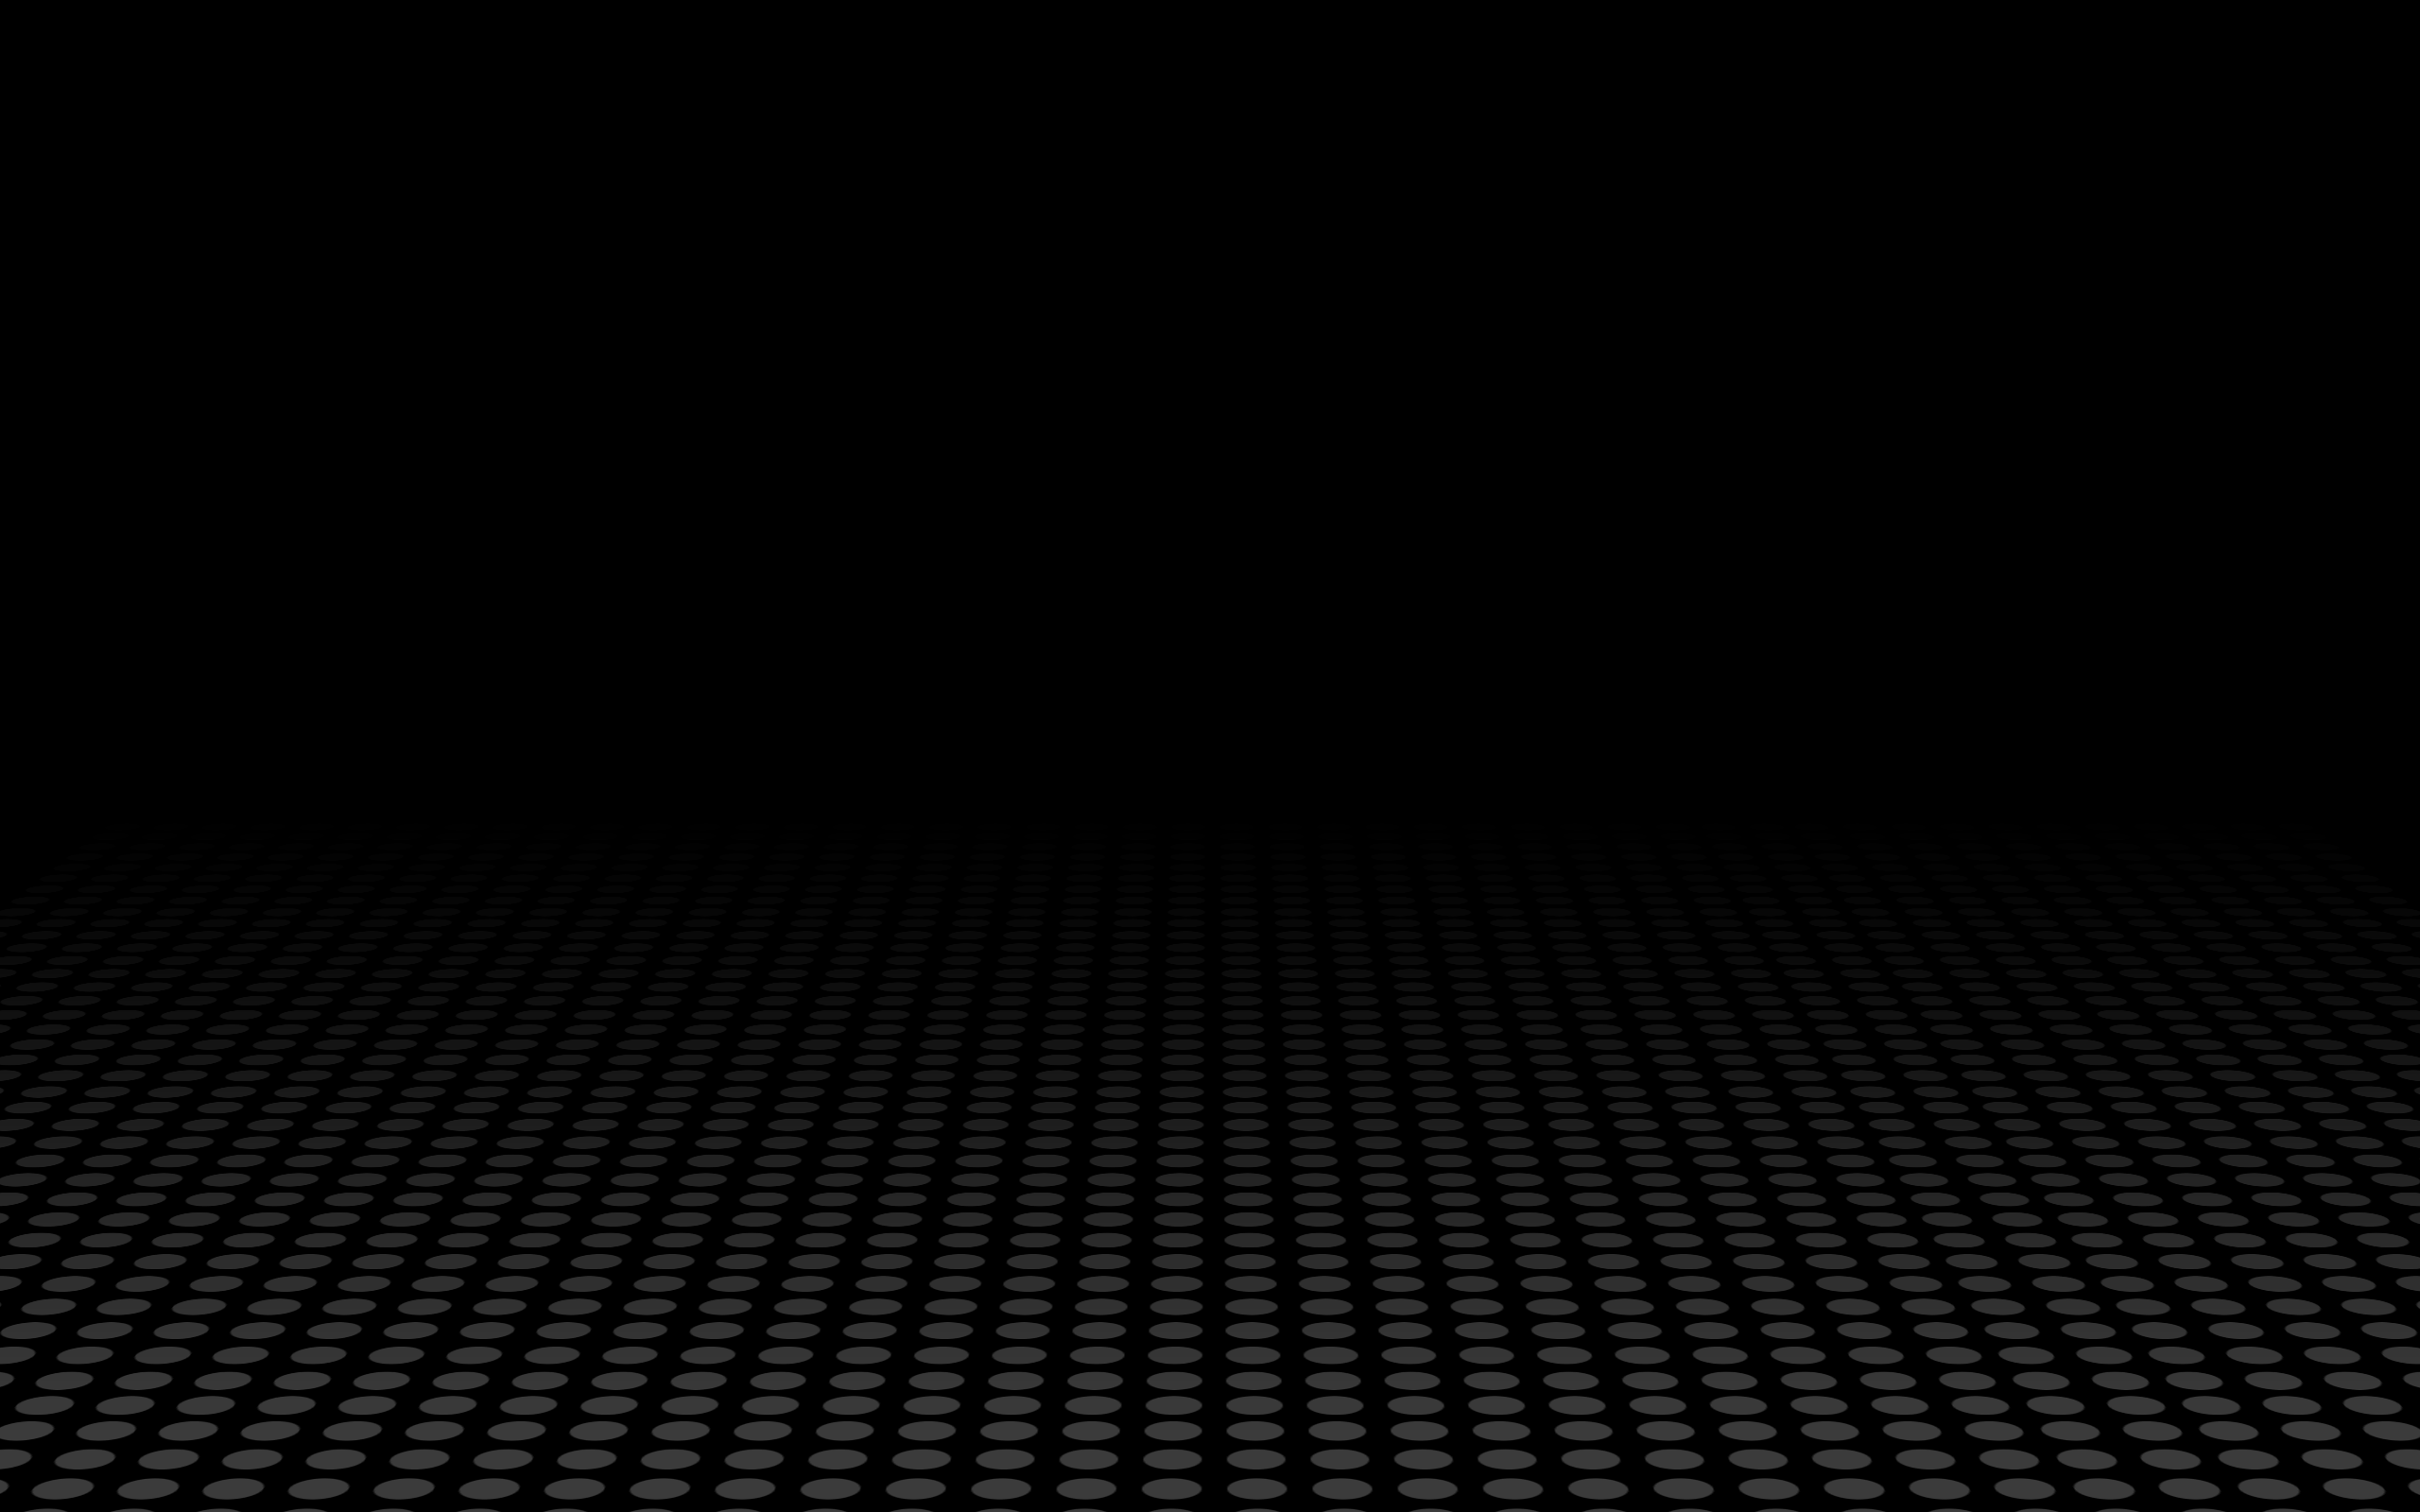 carbon backdrop full hd wallpaper and background image | 2560x1600